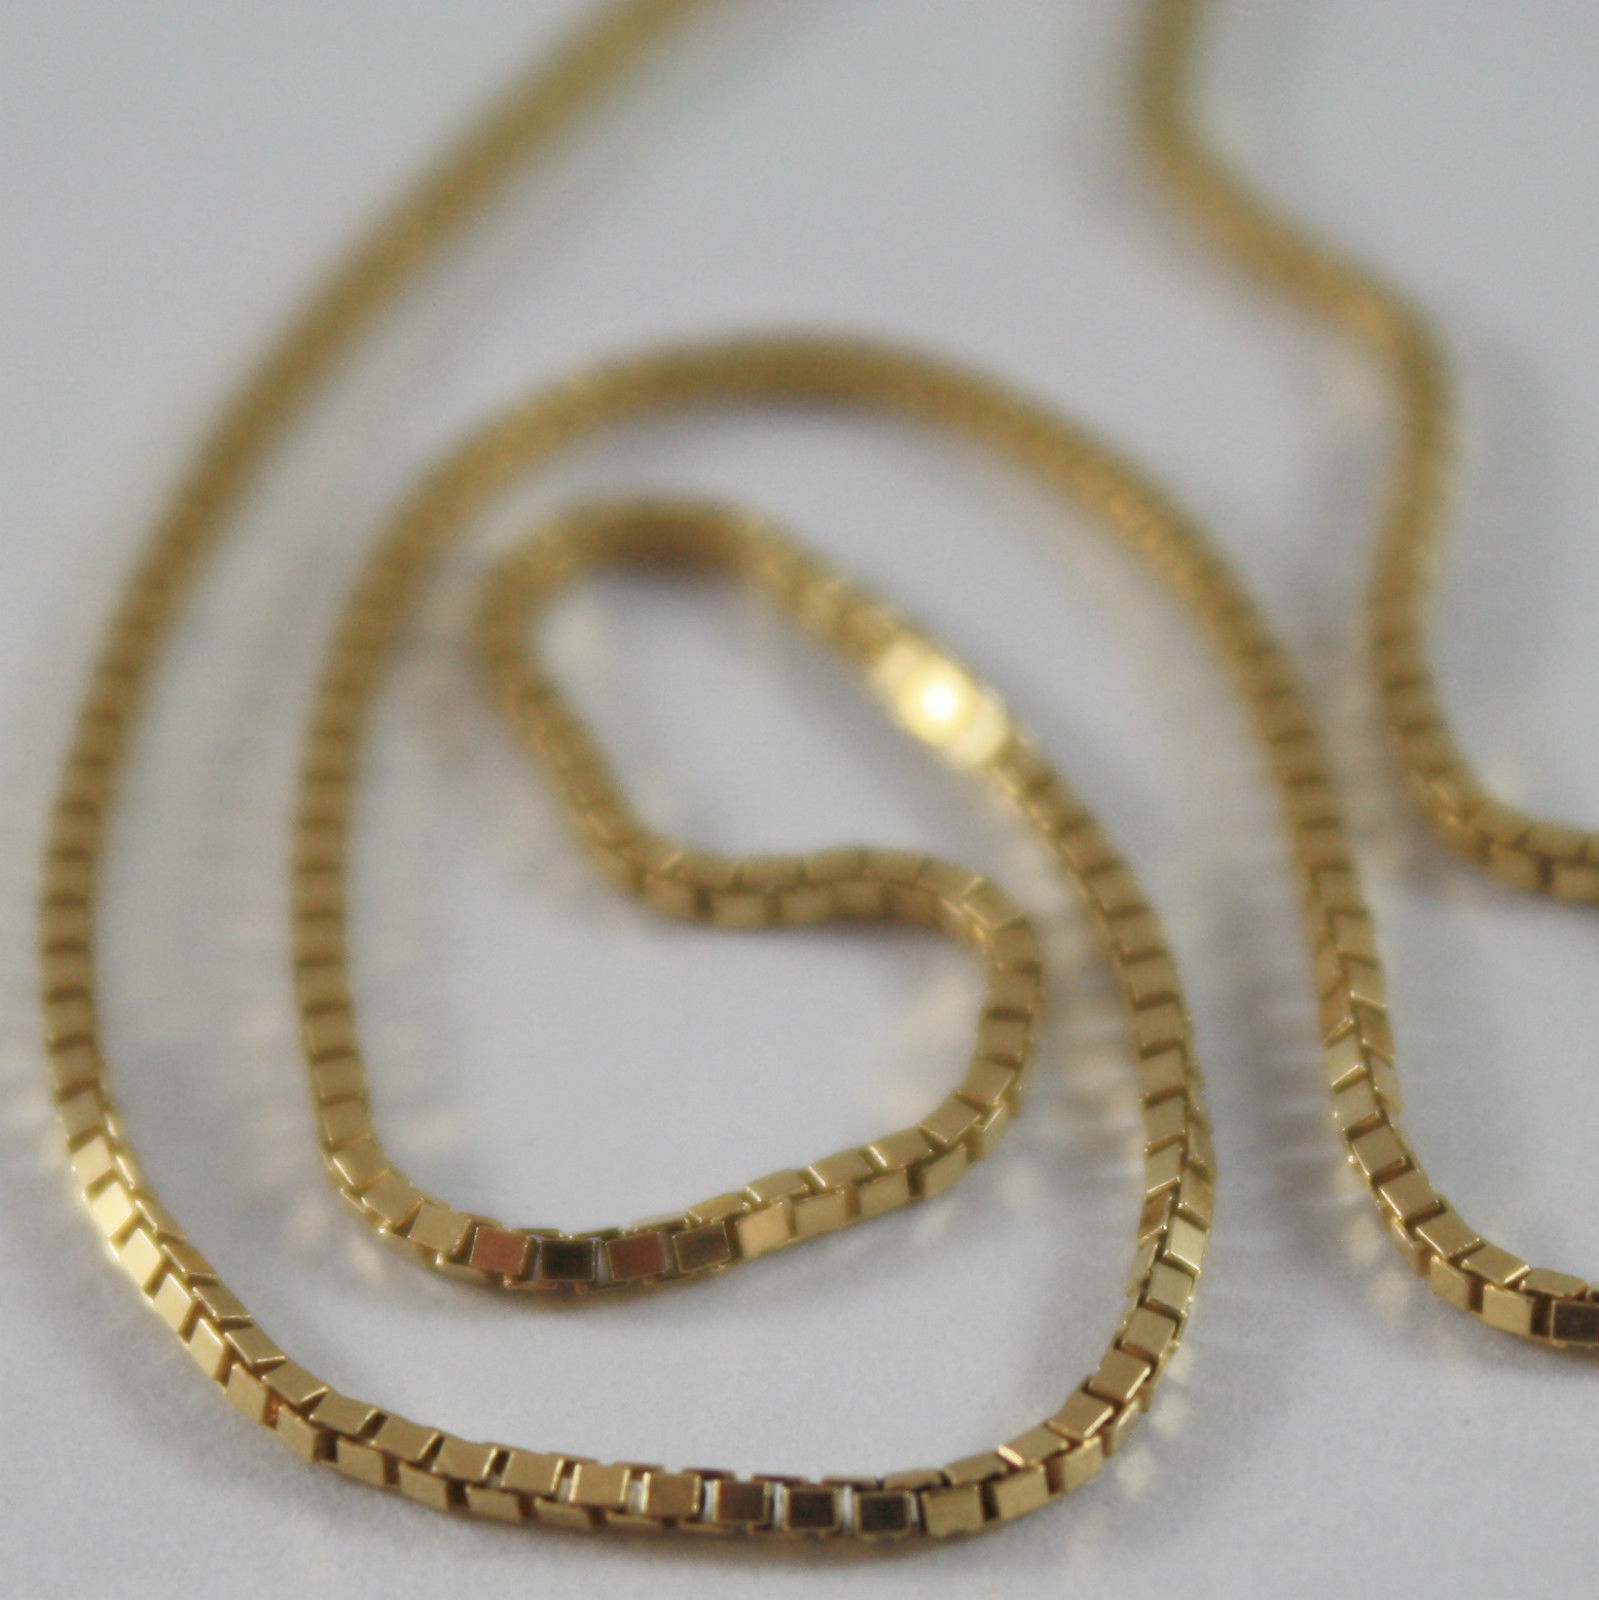 SOLID 18K YELLOW GOLD CHAIN NECKLACE WITH VENETIAN LINK 17.71 INCH MADE IN ITALY